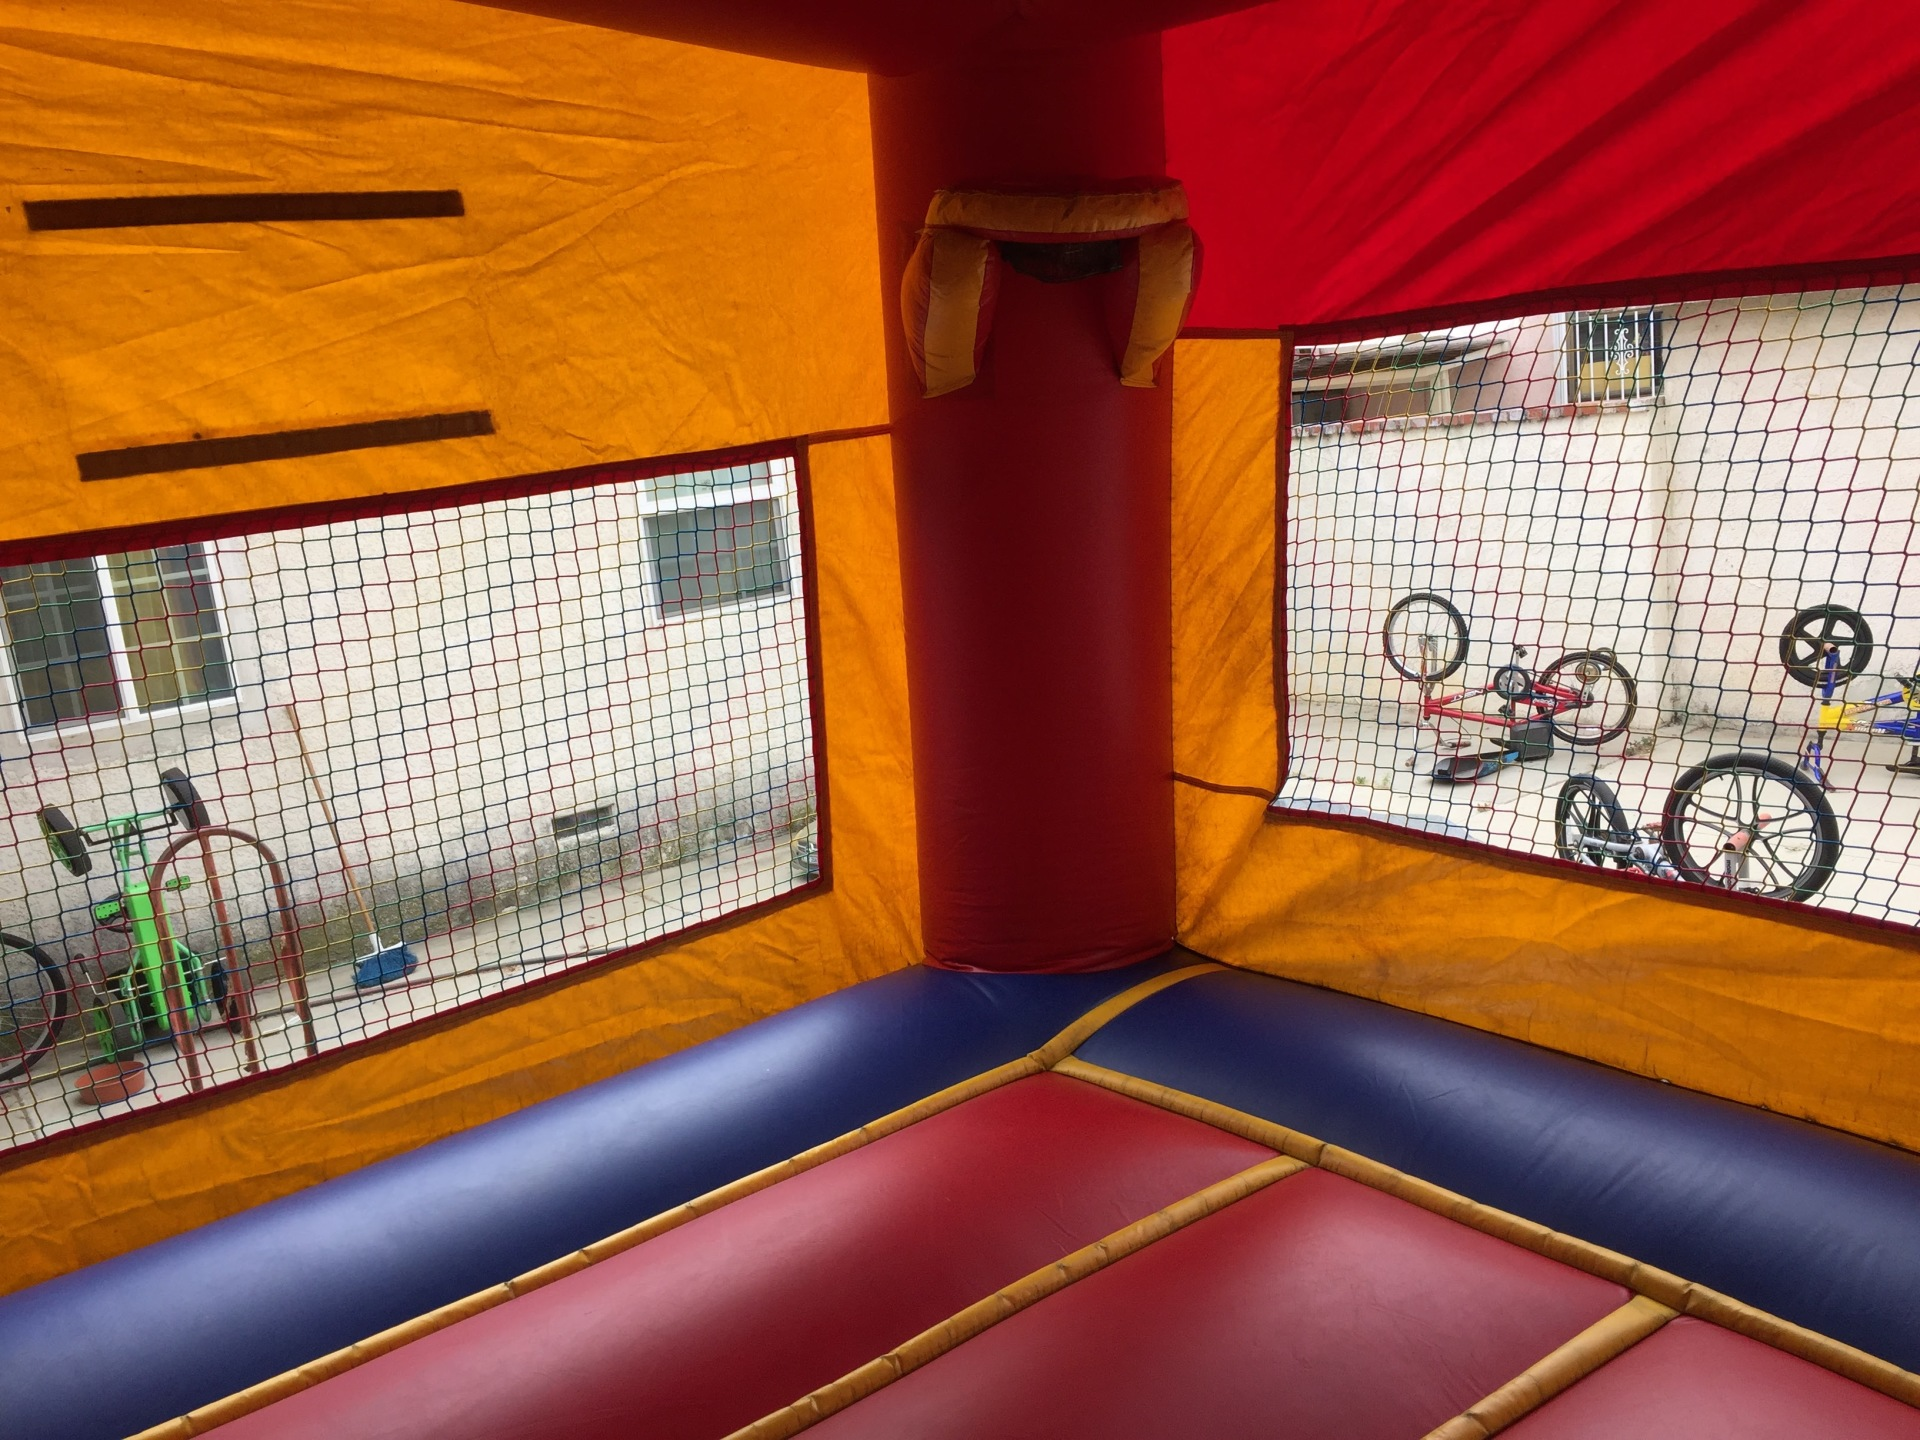 COMBO JUMPERS, 3 IN 1 COMBO JUMPERS, JUMPING AREA, BIG SLIDE, WARERSLIDE RENTALS, BIG COMBO JUMPER